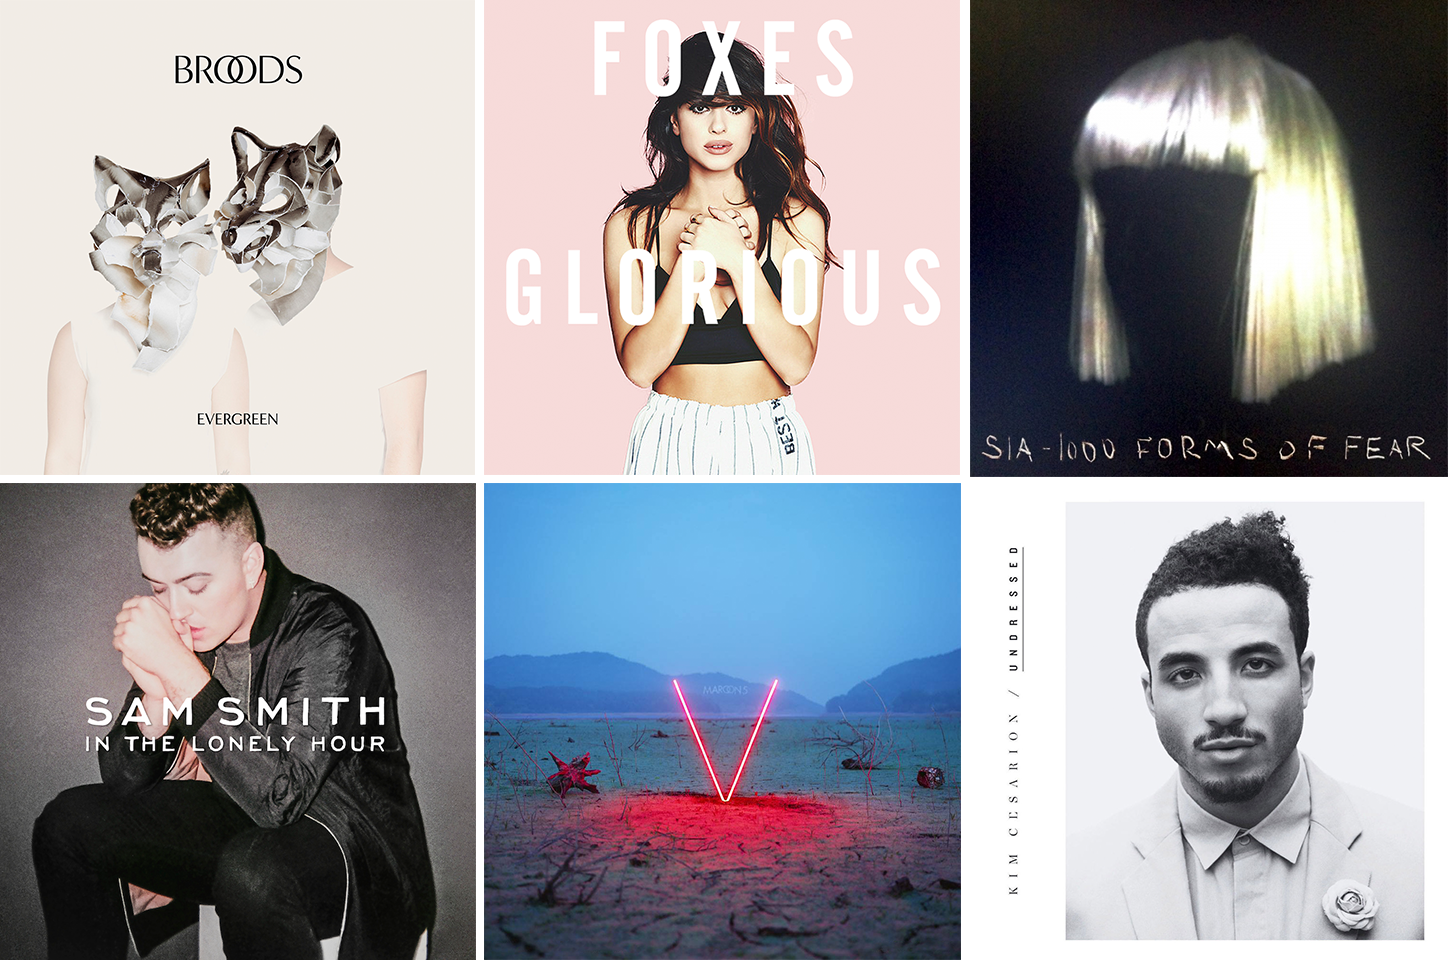 nezuki, broods, foxes, sia, sam smith, maroon 5, kim cesarion, music, artist, band, top 20, dance, audio